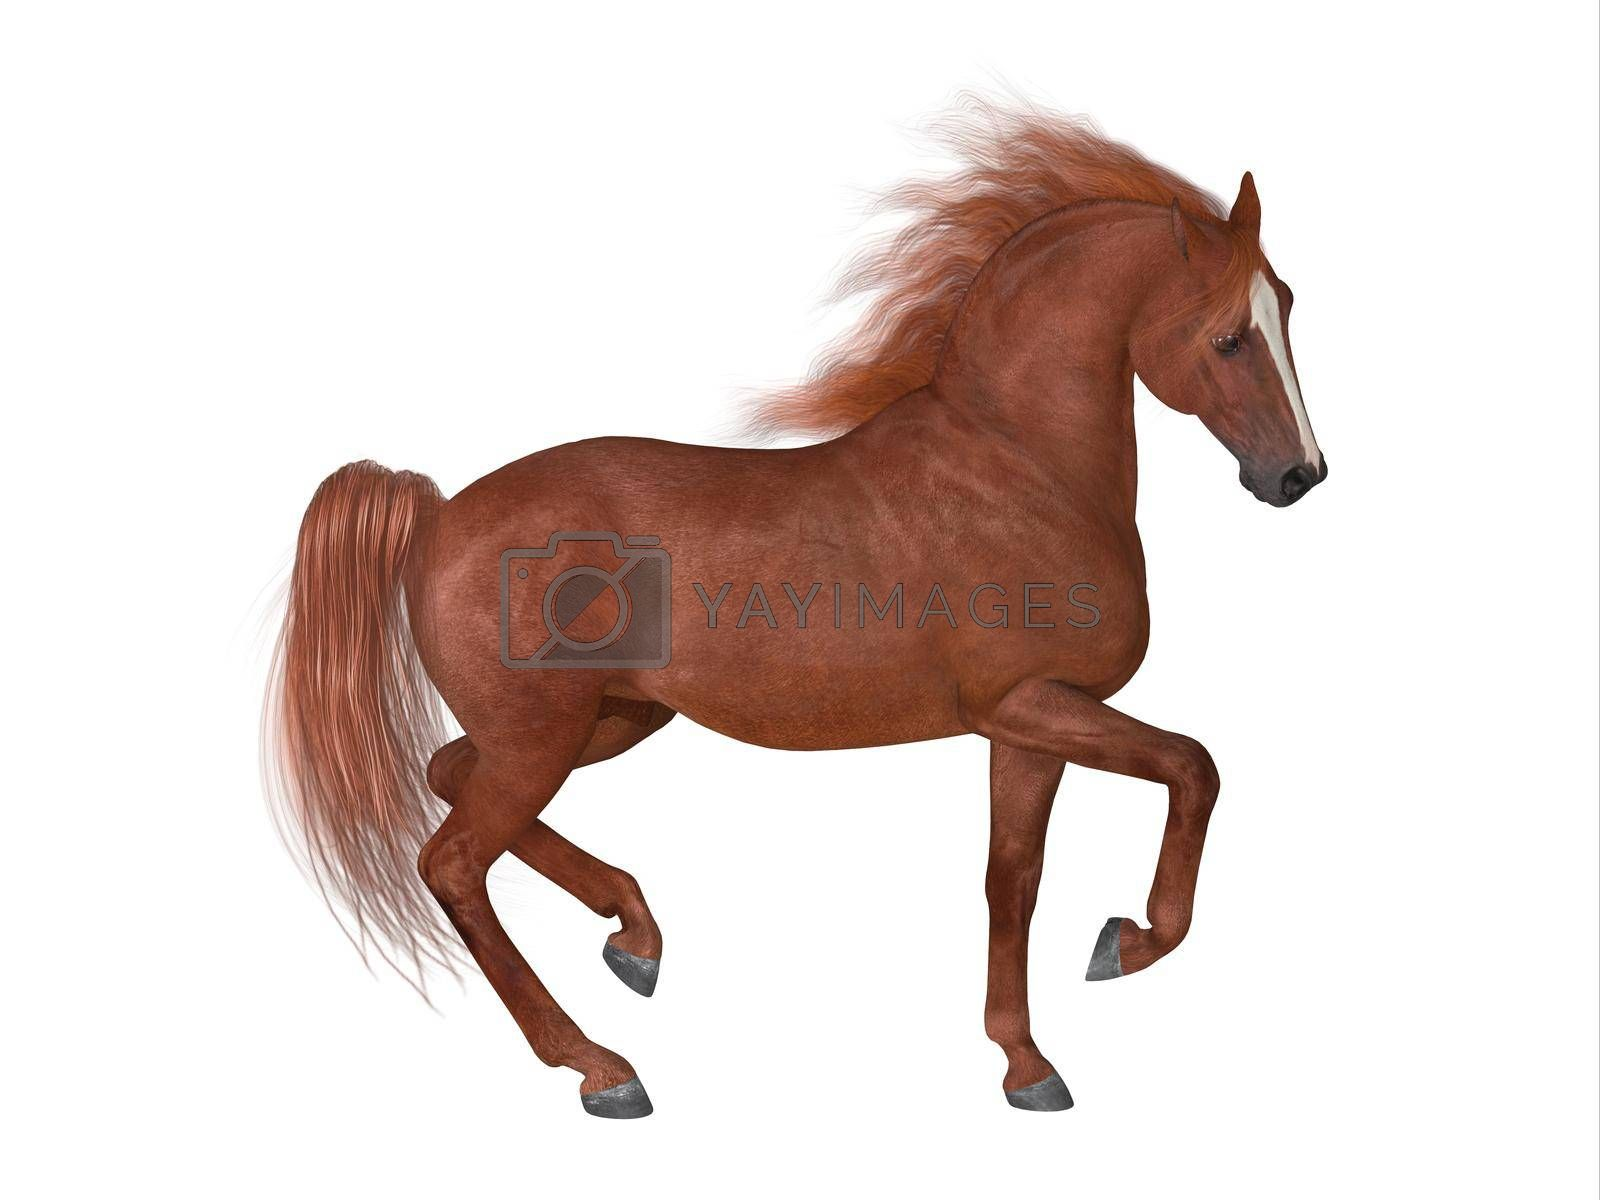 The Thoroughbred is best known for horse racing and can come in various coat colors and known for their speed, spirit and endurance.